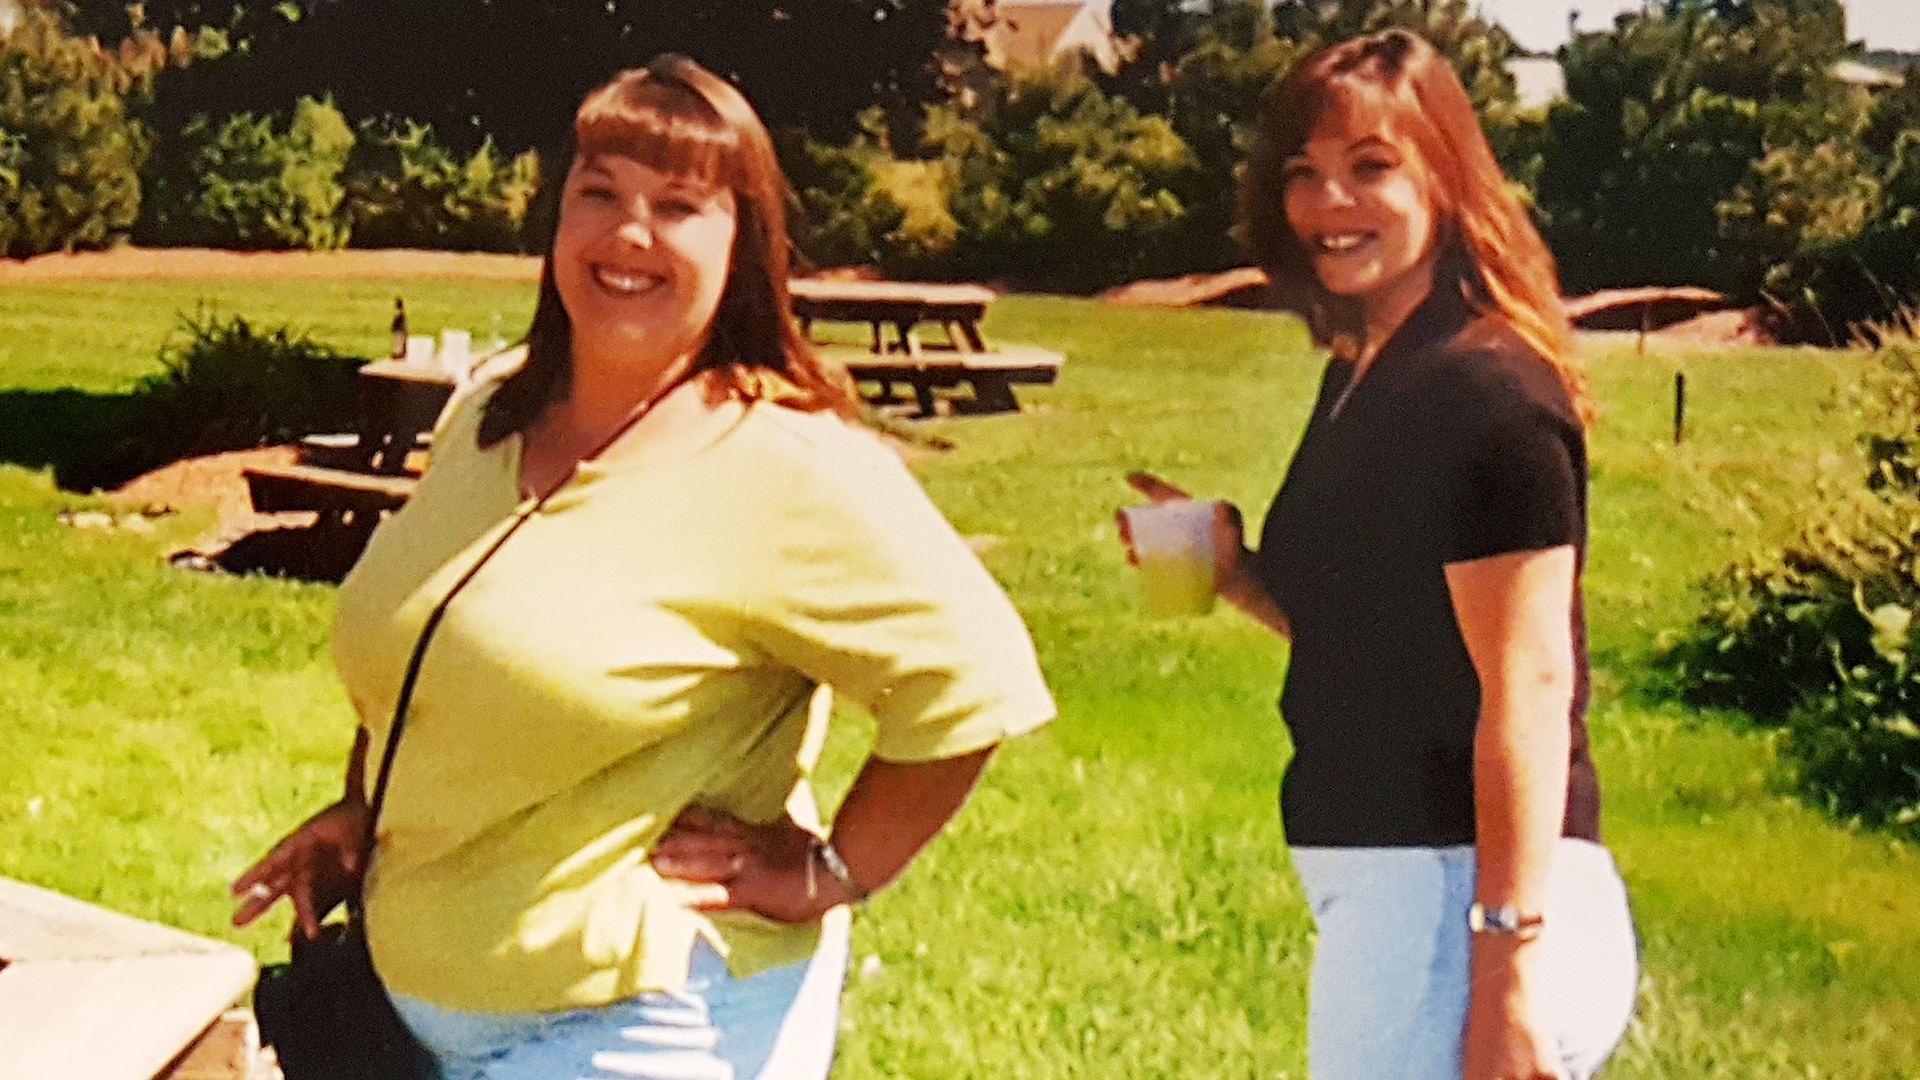 Fat To Fit Twin Woman Loses 90 Pounds Gains Confidence